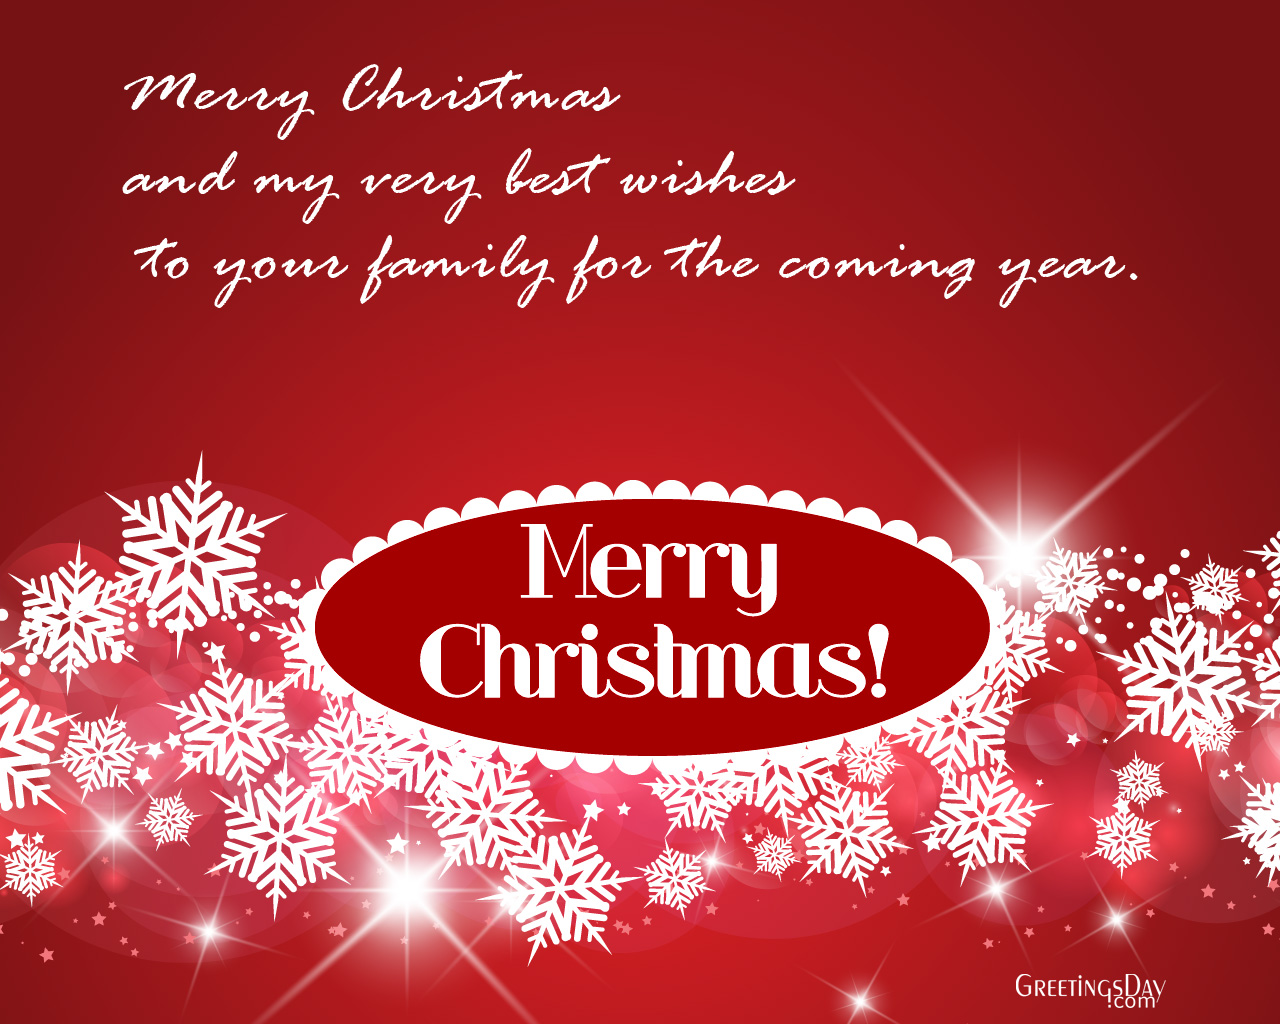 20 christmas greeting cards wishes for facebook friends merry i am sending my christmas wishes to you all i hope you have a happy time with friends and family kristyandbryce Image collections